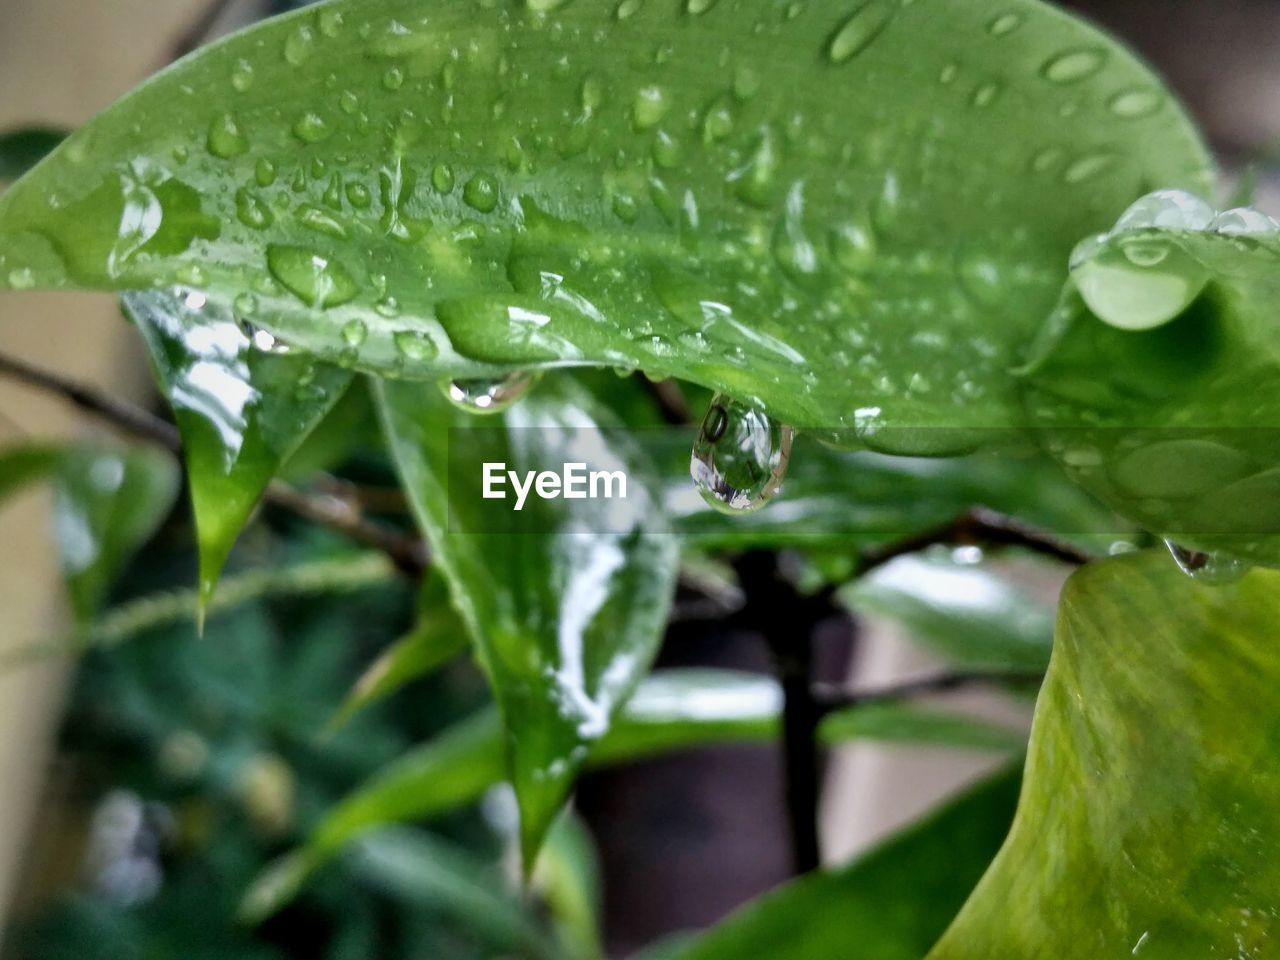 leaf, drop, green color, water, wet, close-up, nature, freshness, one animal, no people, plant, animal themes, growth, animals in the wild, raindrop, day, outdoors, beauty in nature, fragility